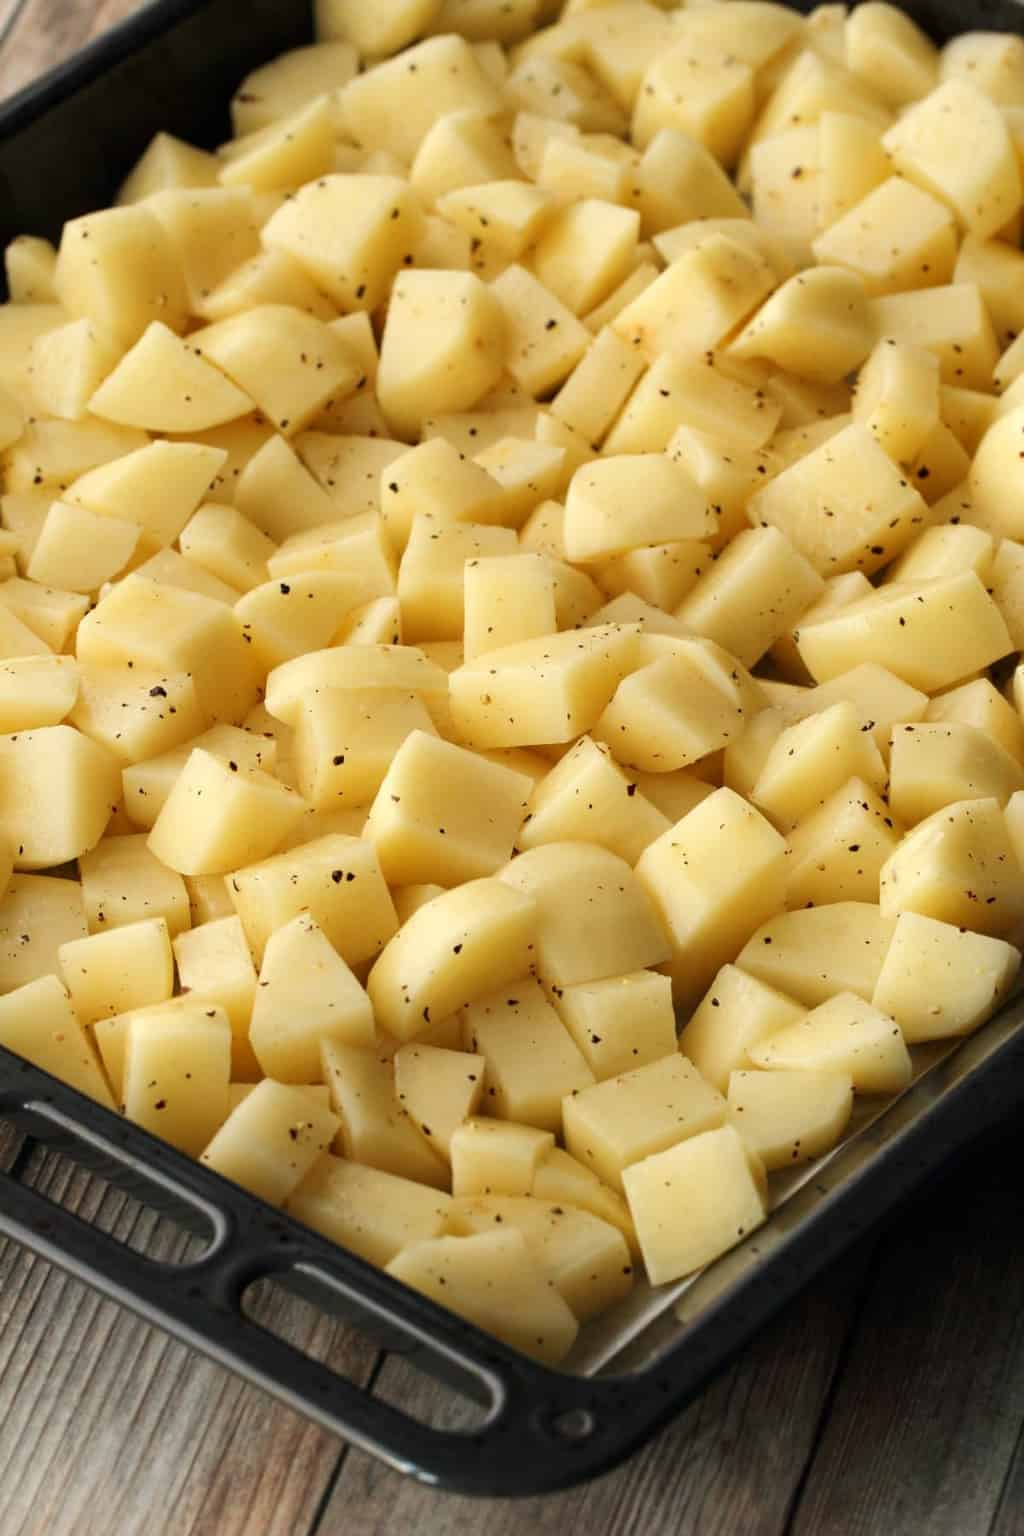 Chopped potatoes on a baking tray ready to go into the oven.